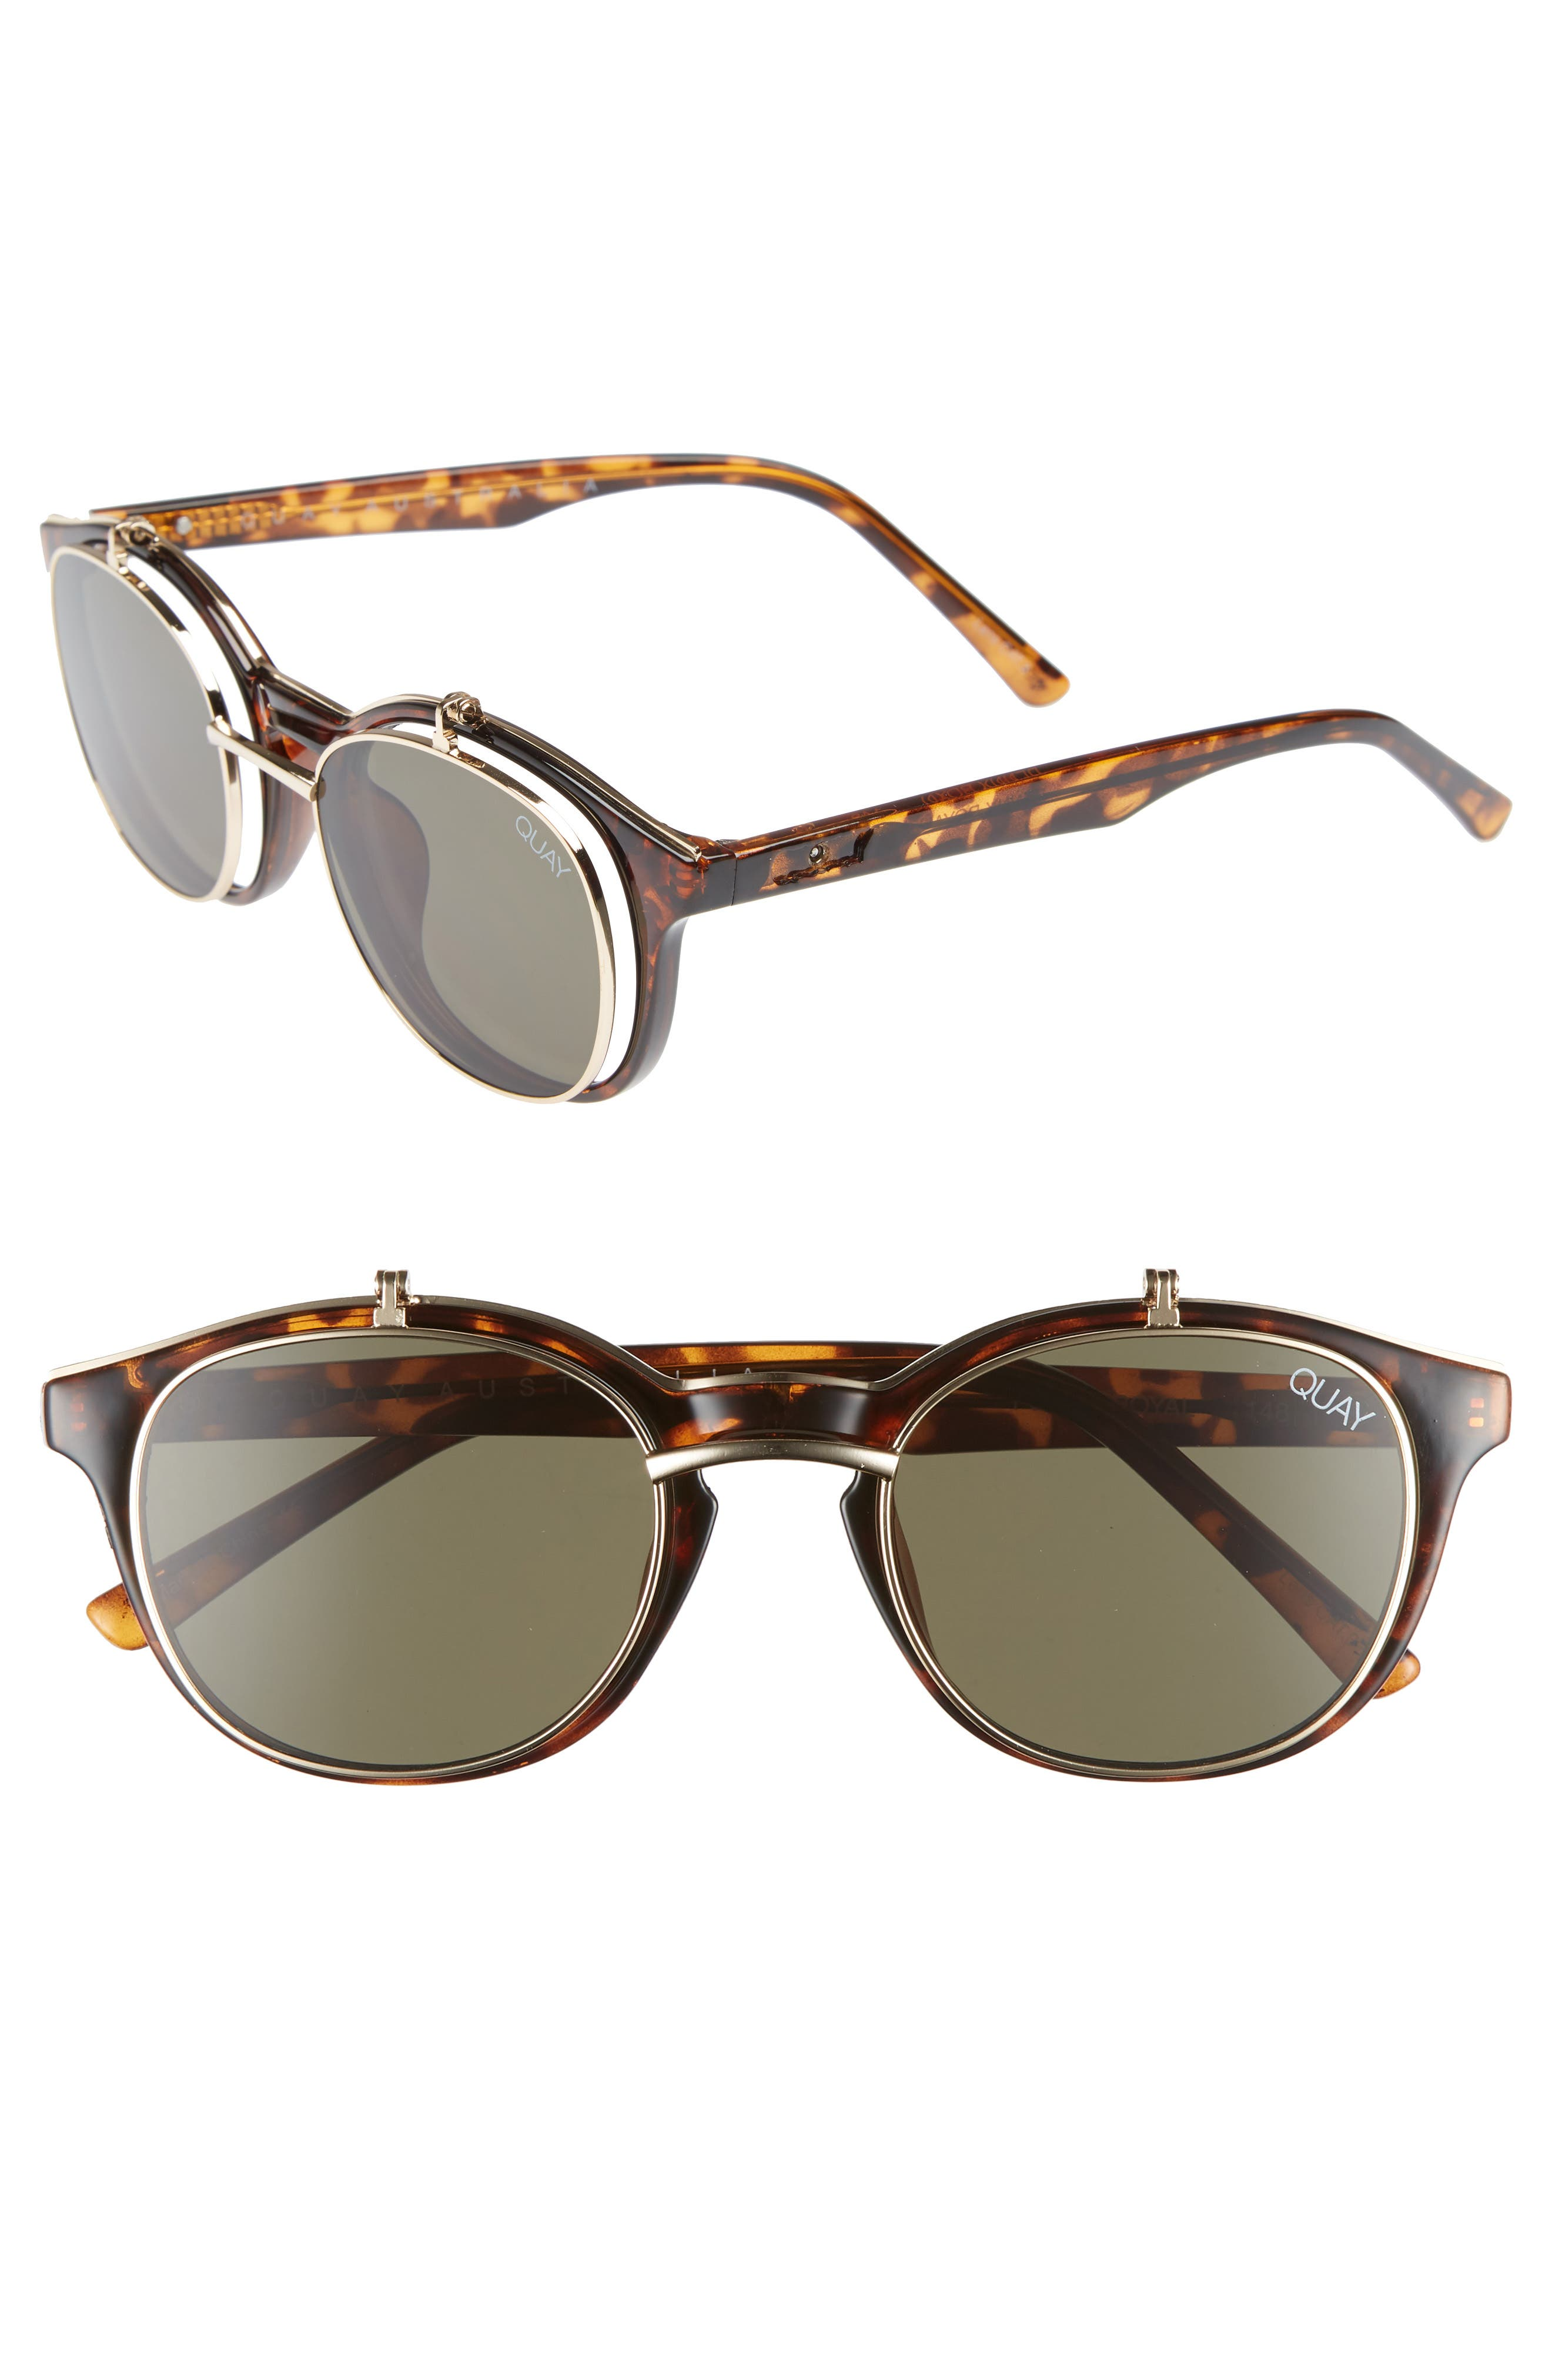 Penny Royal 55mm Flip-Up Round Sunglasses,                         Main,                         color, 200